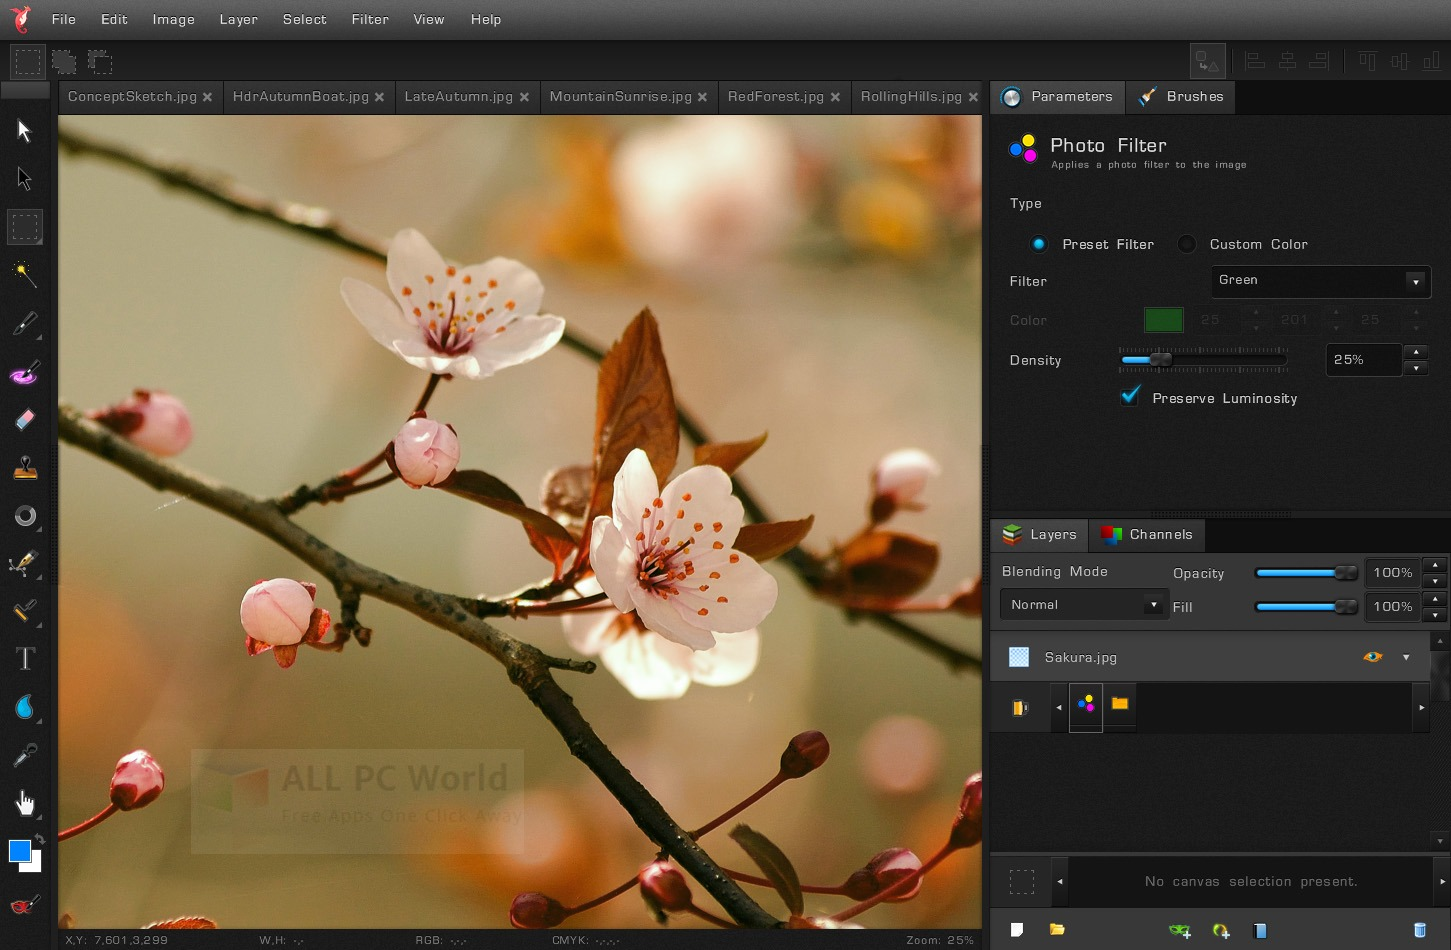 Bloom Image Editor Review